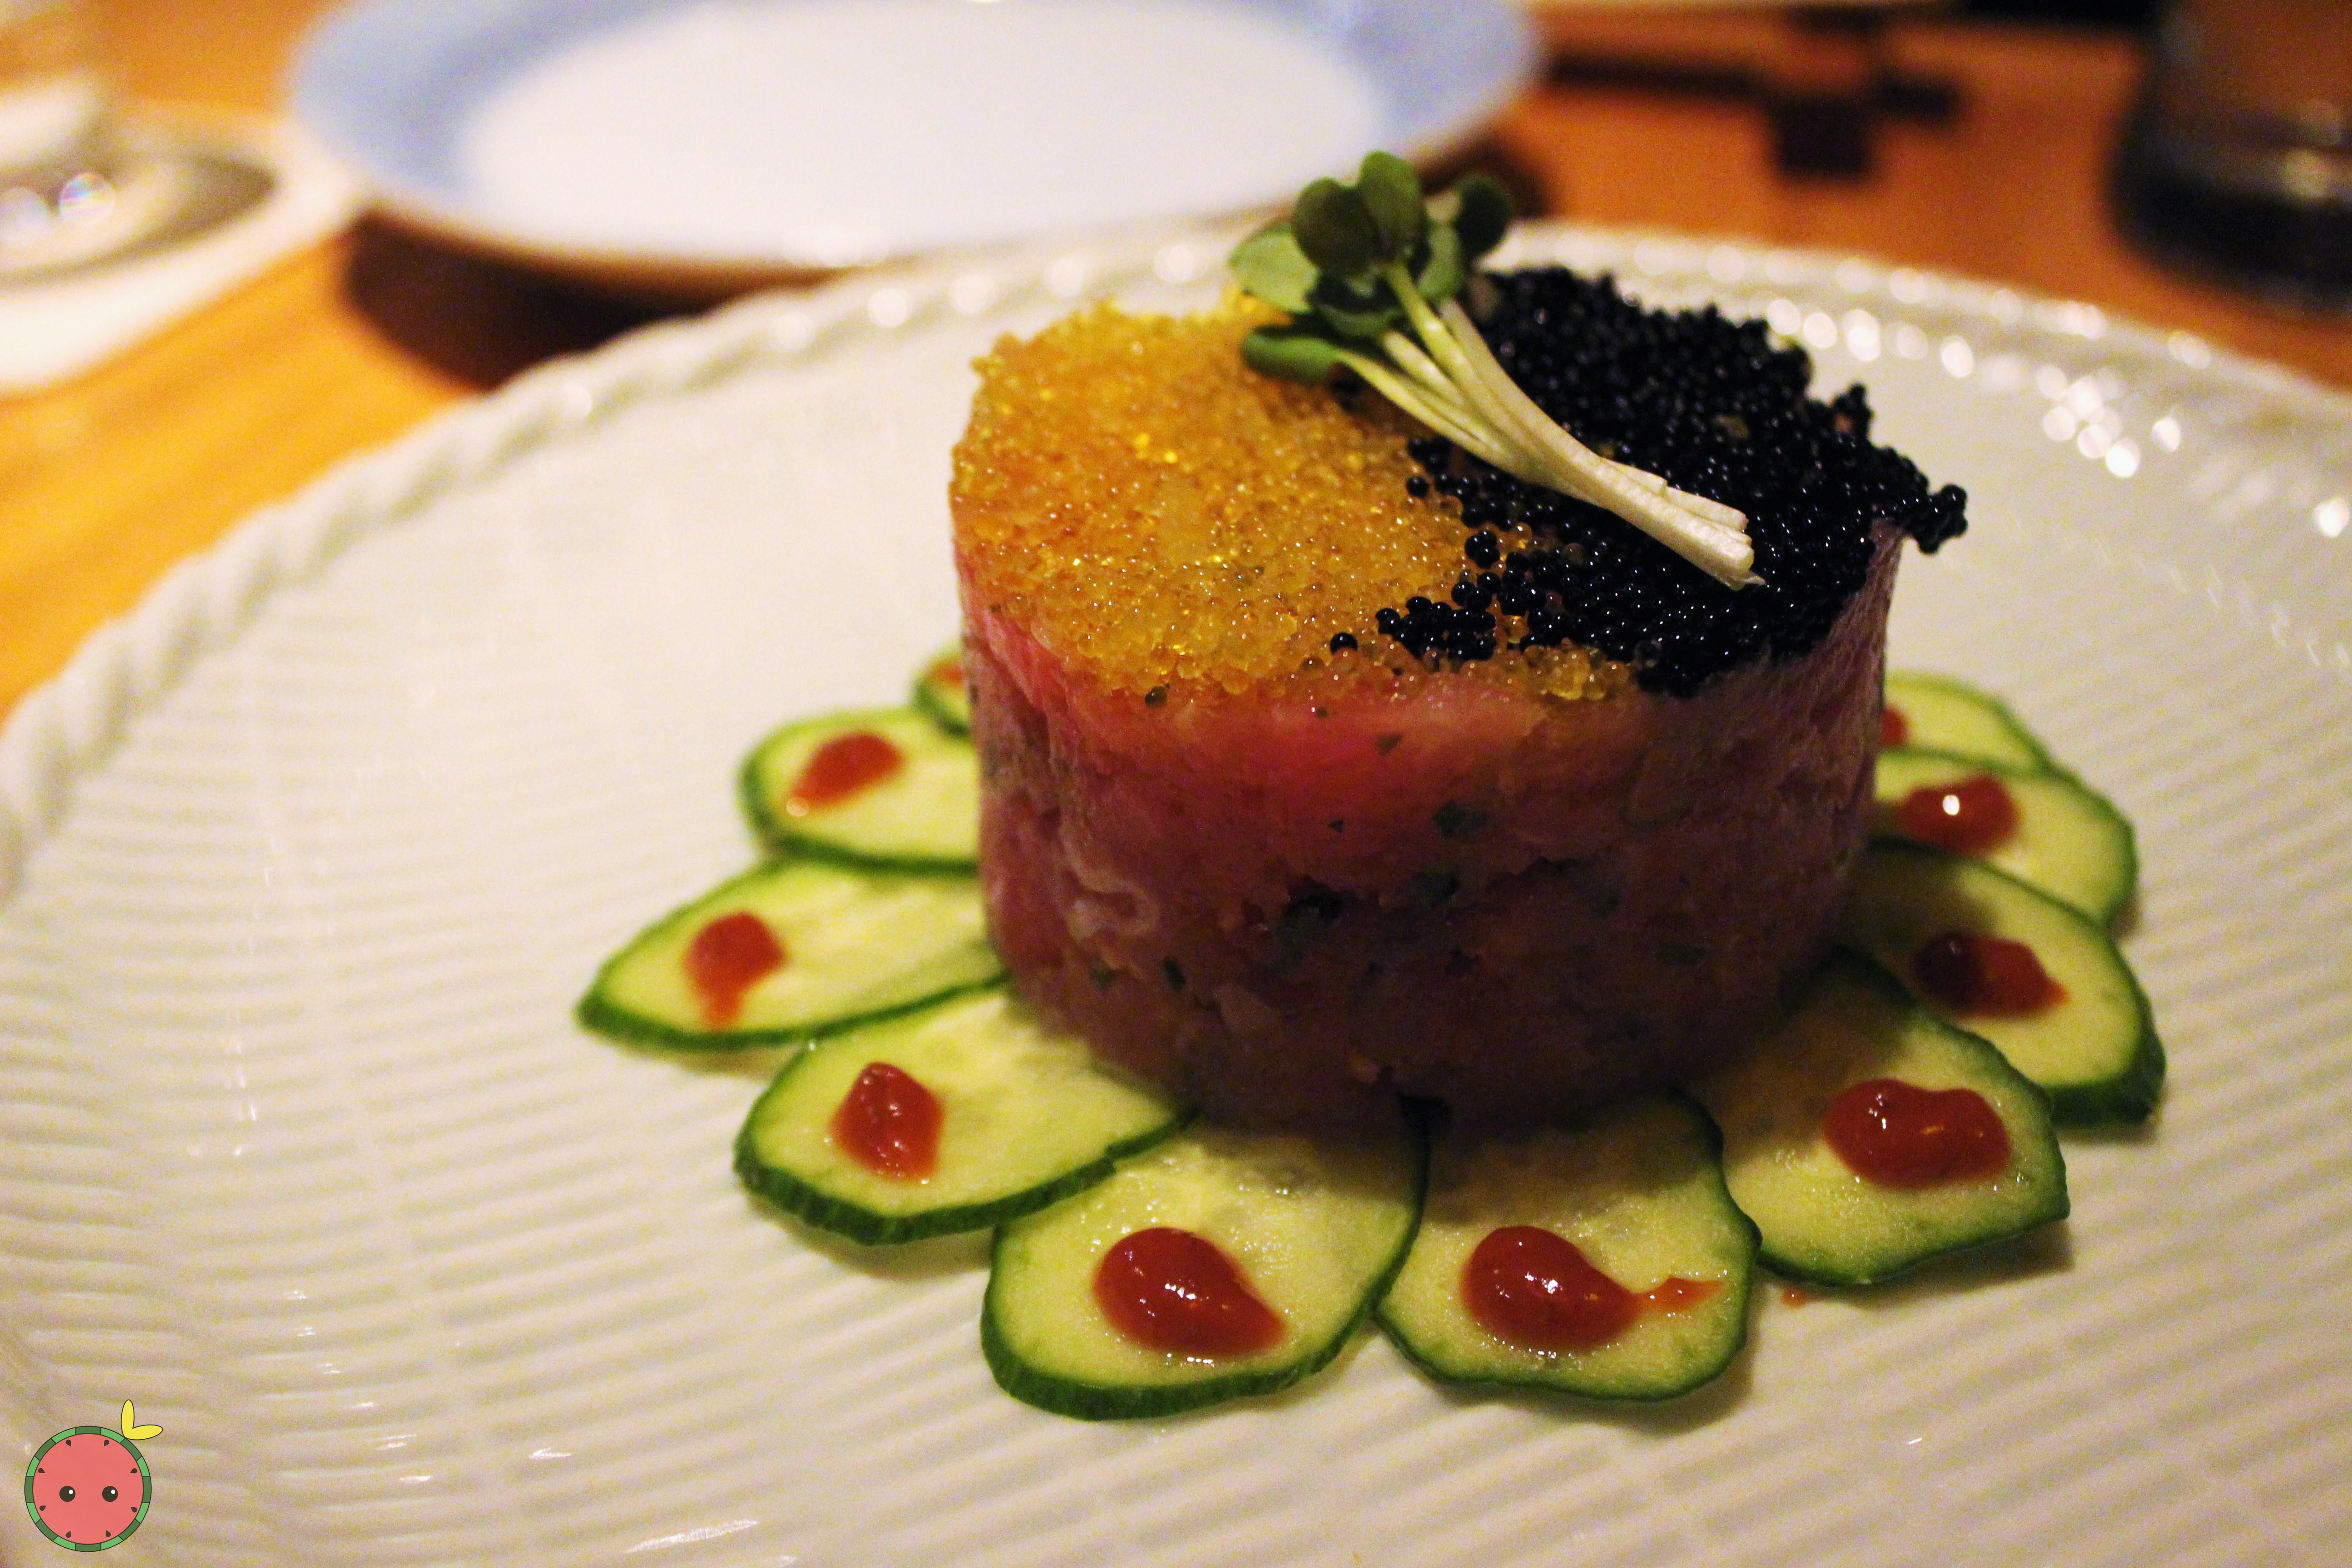 Maguro Tartar - Chopped tuna with flying fish roe and steeped in yuzu and caviar